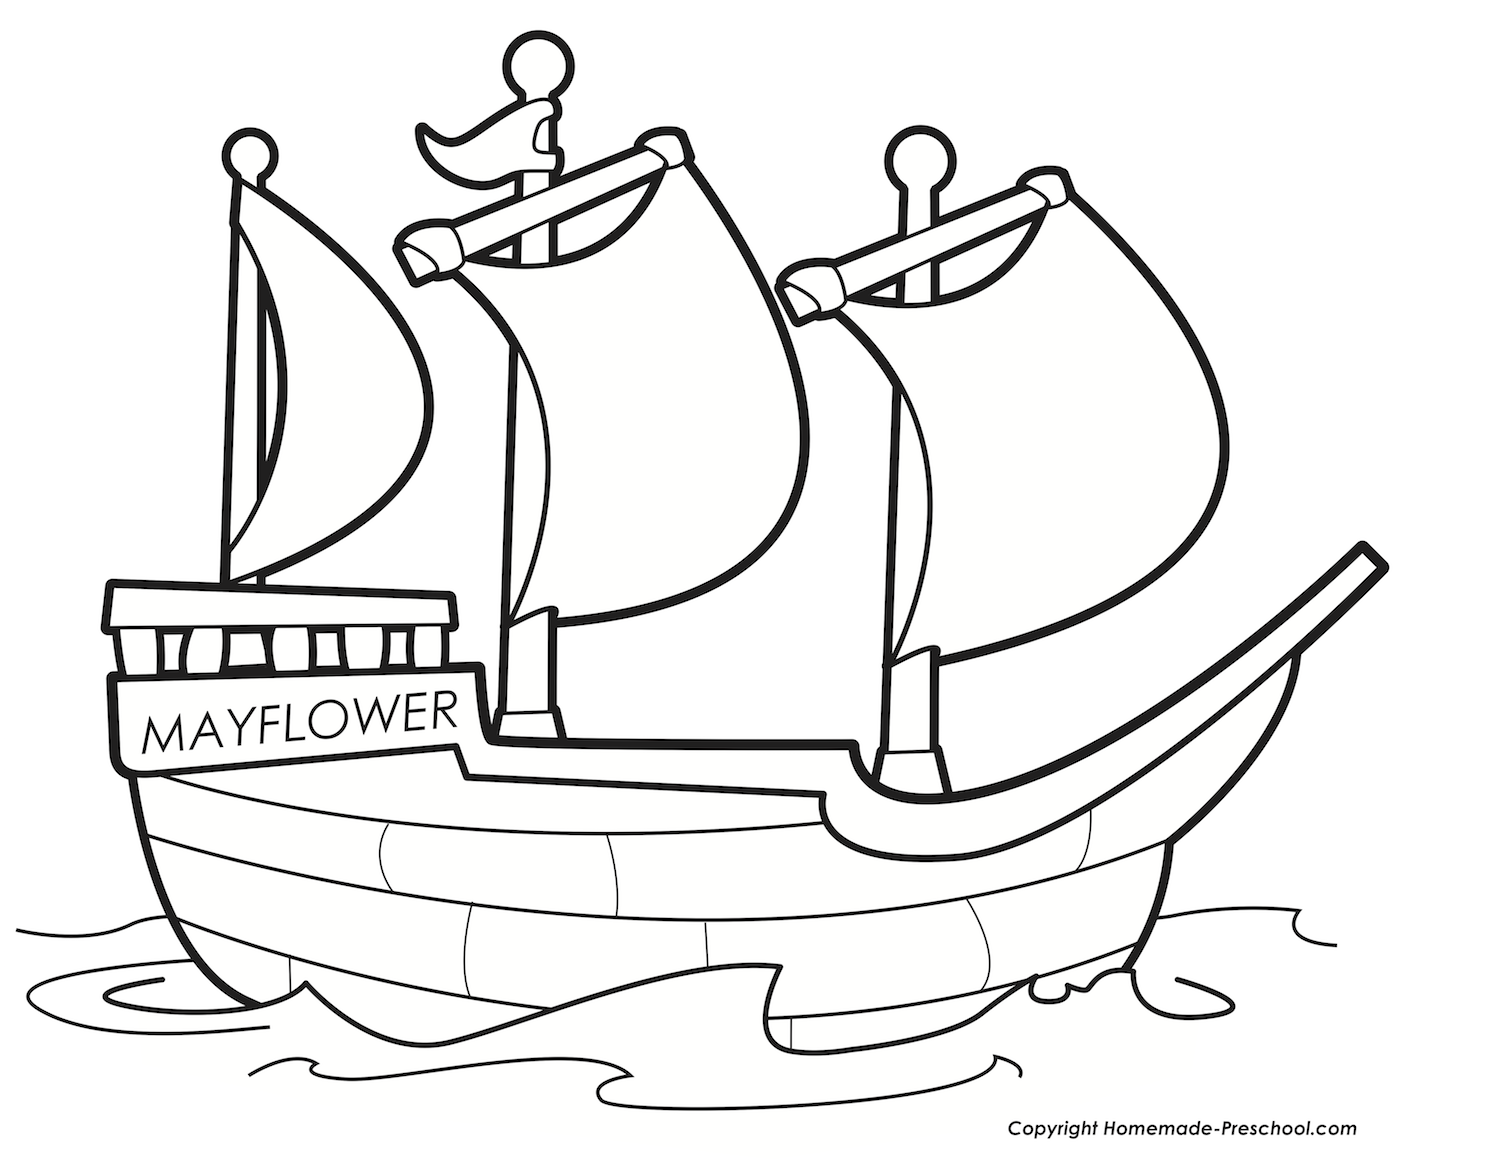 1500x1159 Mayflower Coloring Pages